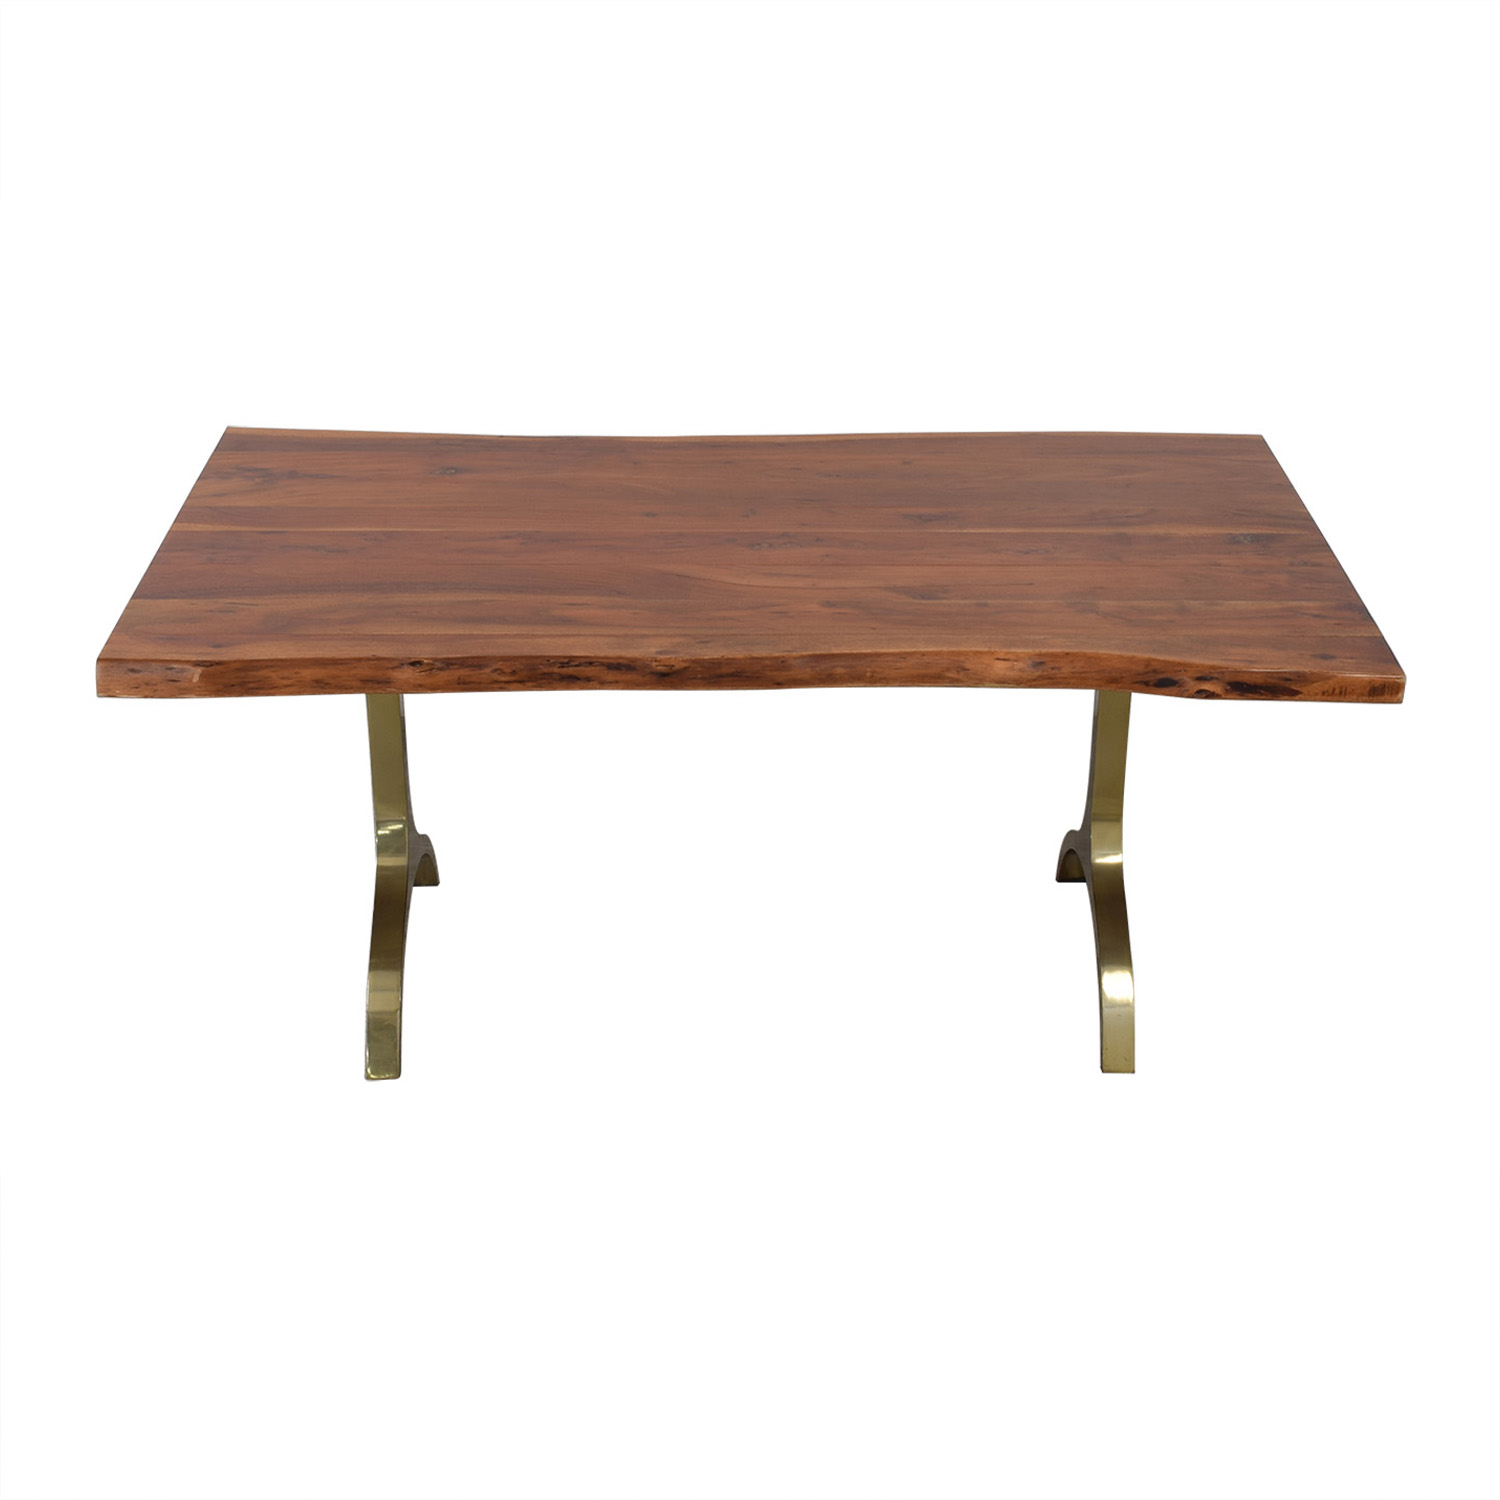 West Elm West Elm Live Edge Dining Table discount